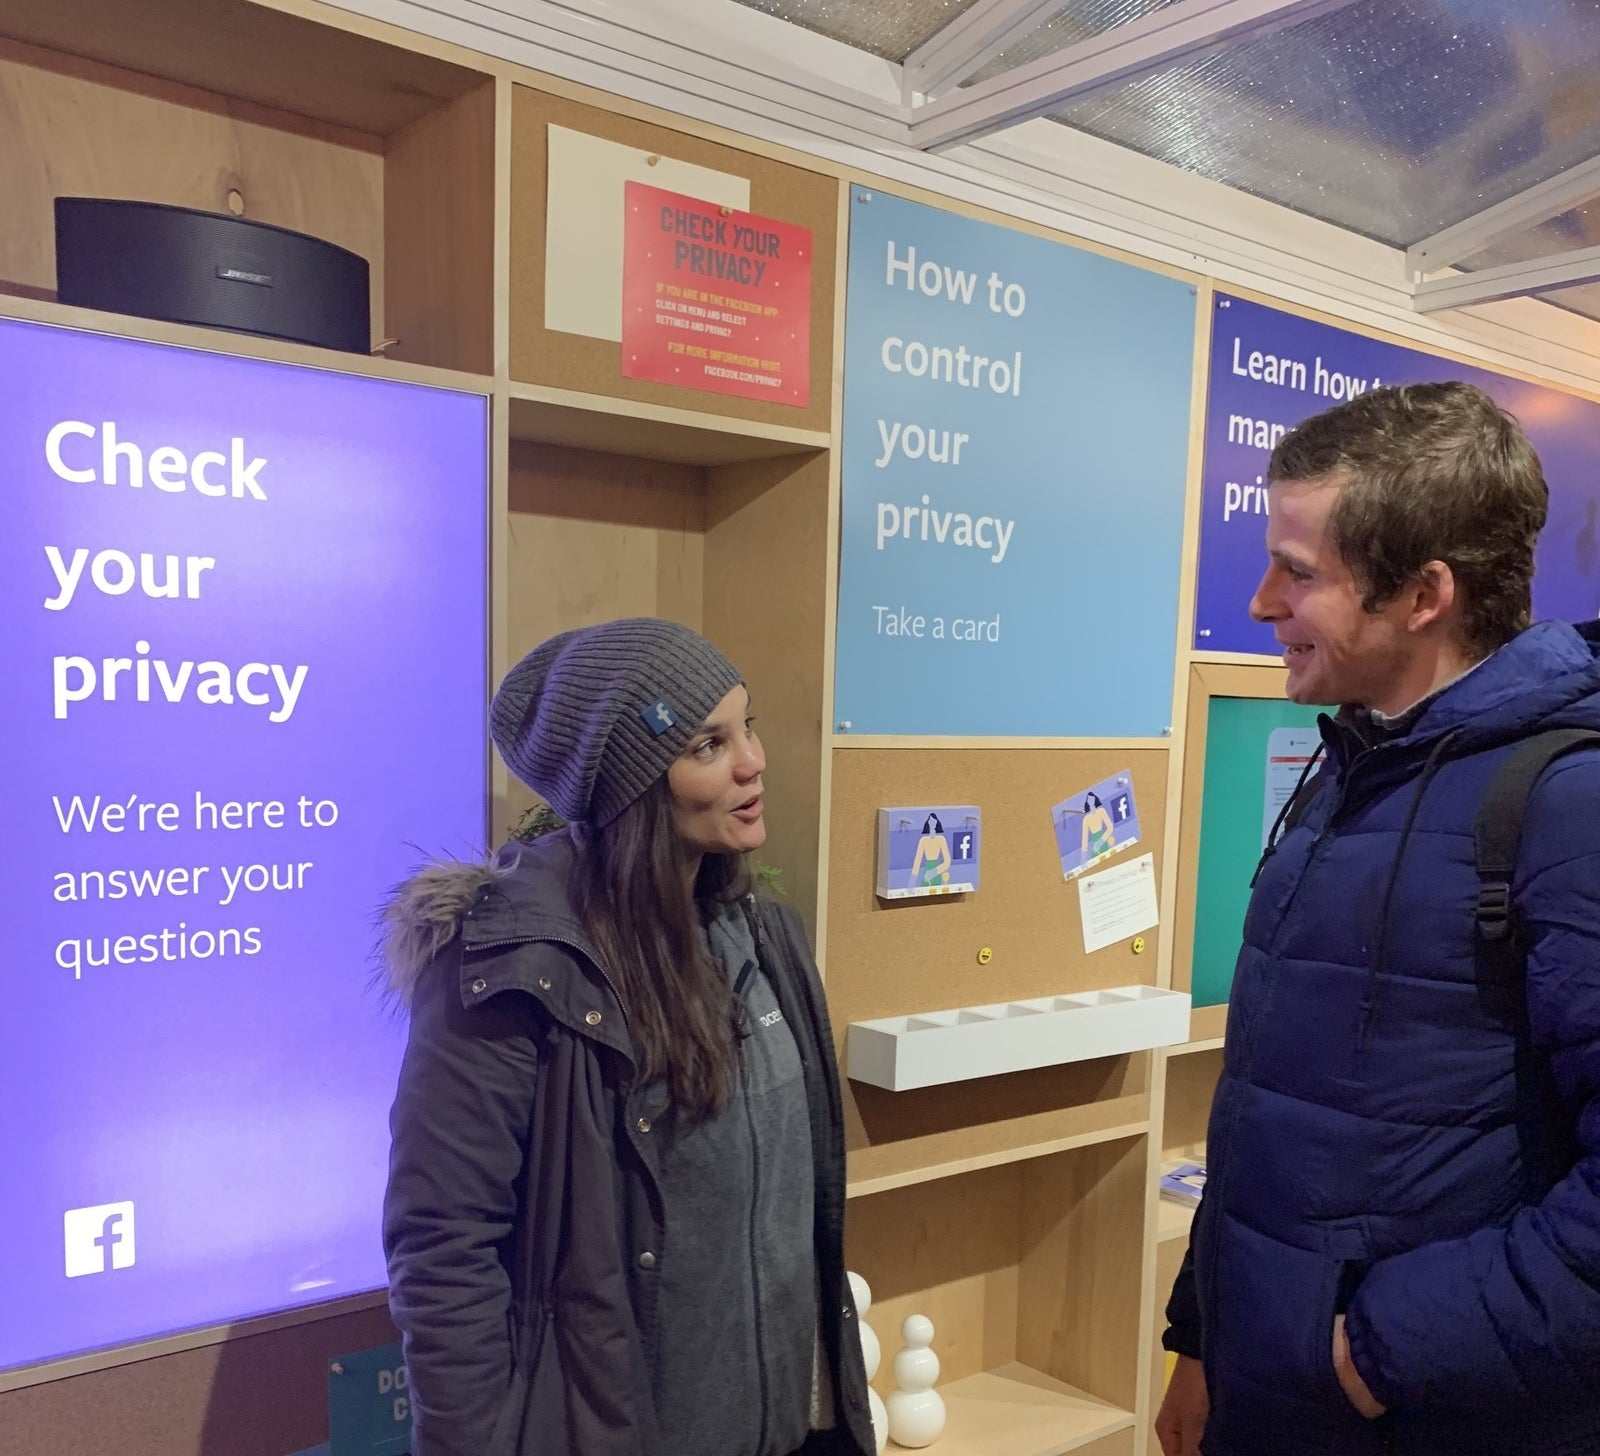 Facebook's Privacy Pop-Up In NYC Was Weird And Useless